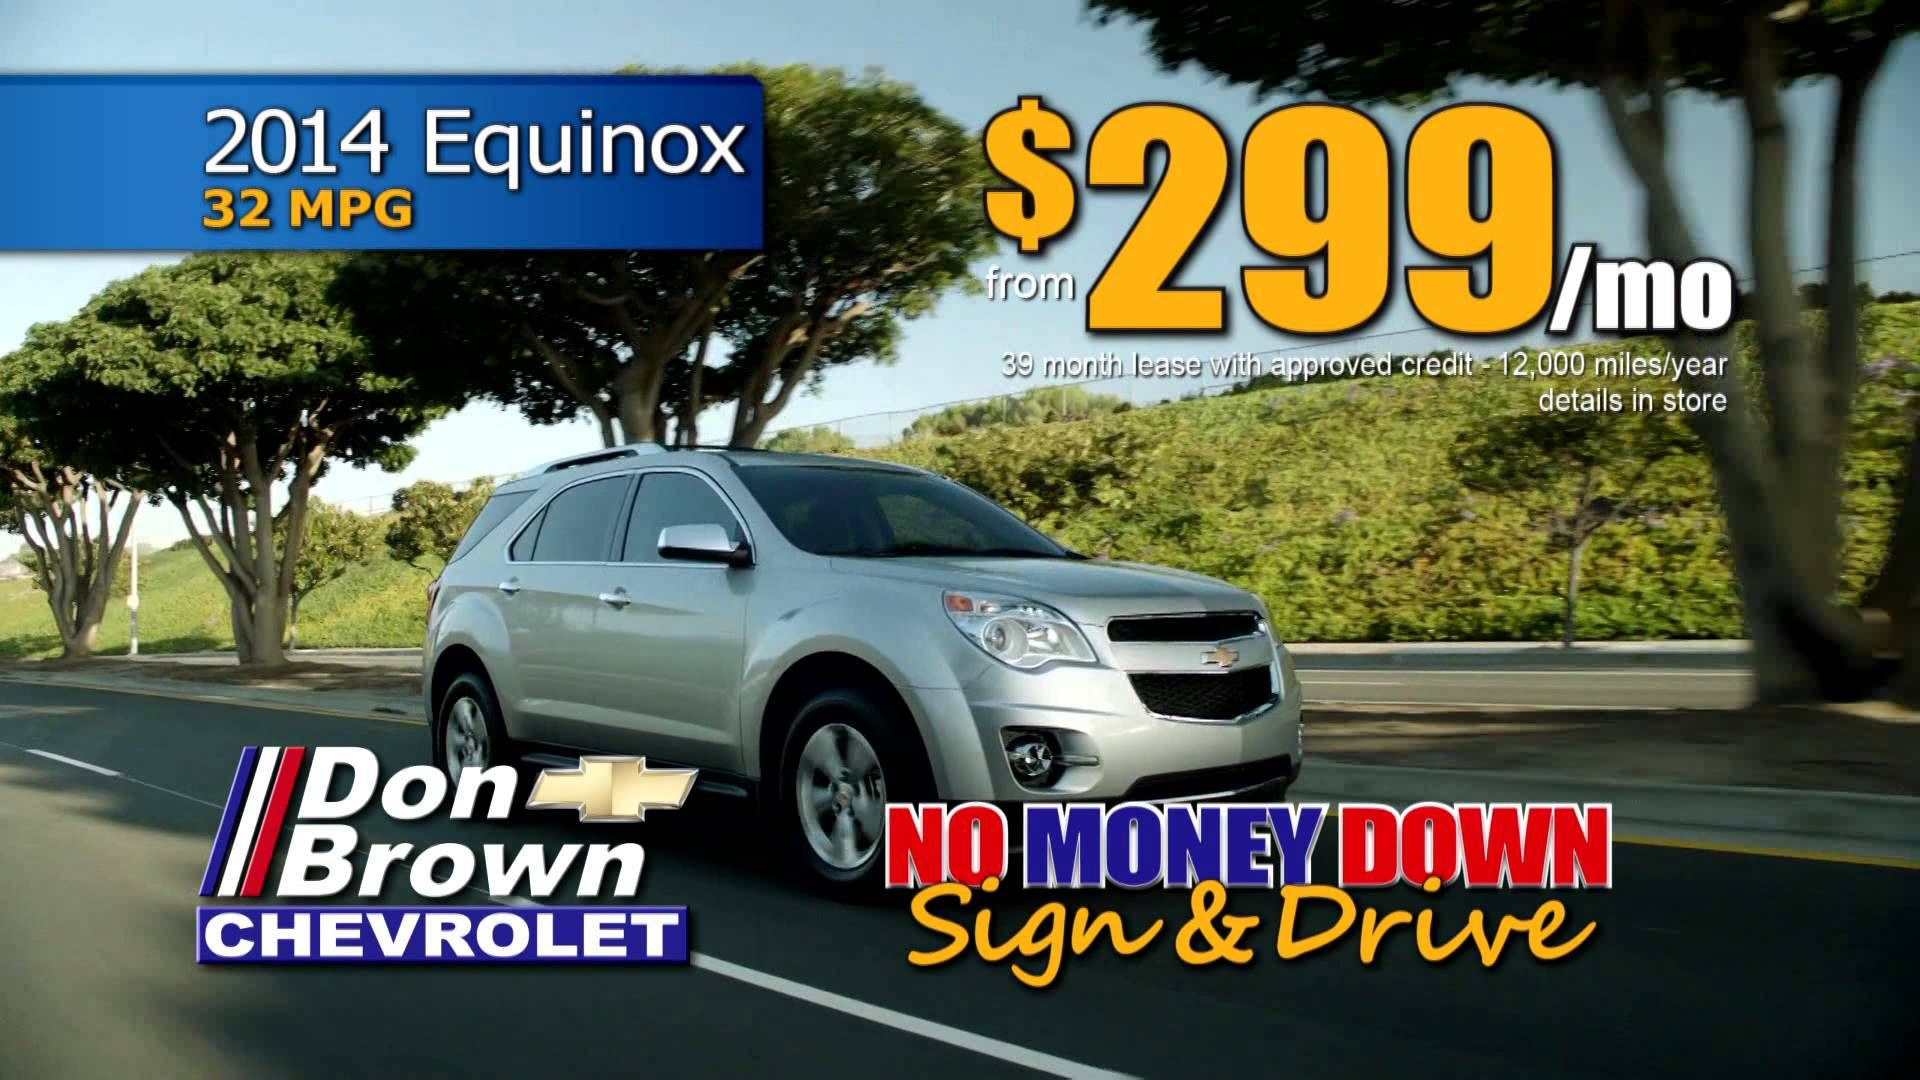 Limited Time Sign Drive Offer At Don Brown Chevrolet Chevrolet Driving 2014 Equinox